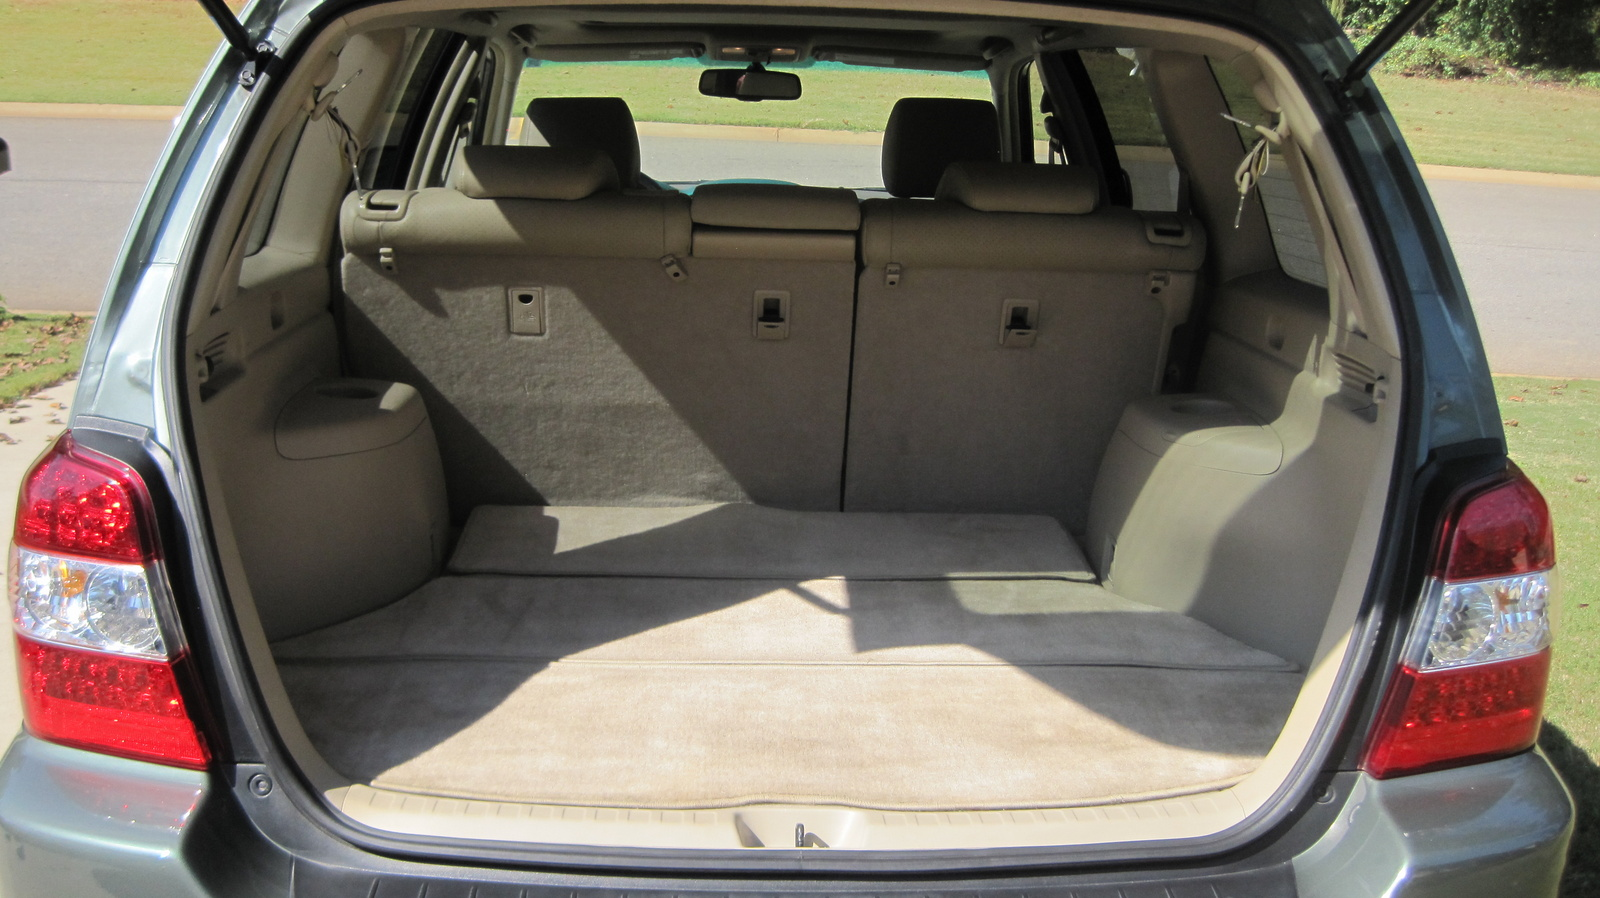 2007 toyota highlander hybrid interior pictures cargurus. Black Bedroom Furniture Sets. Home Design Ideas